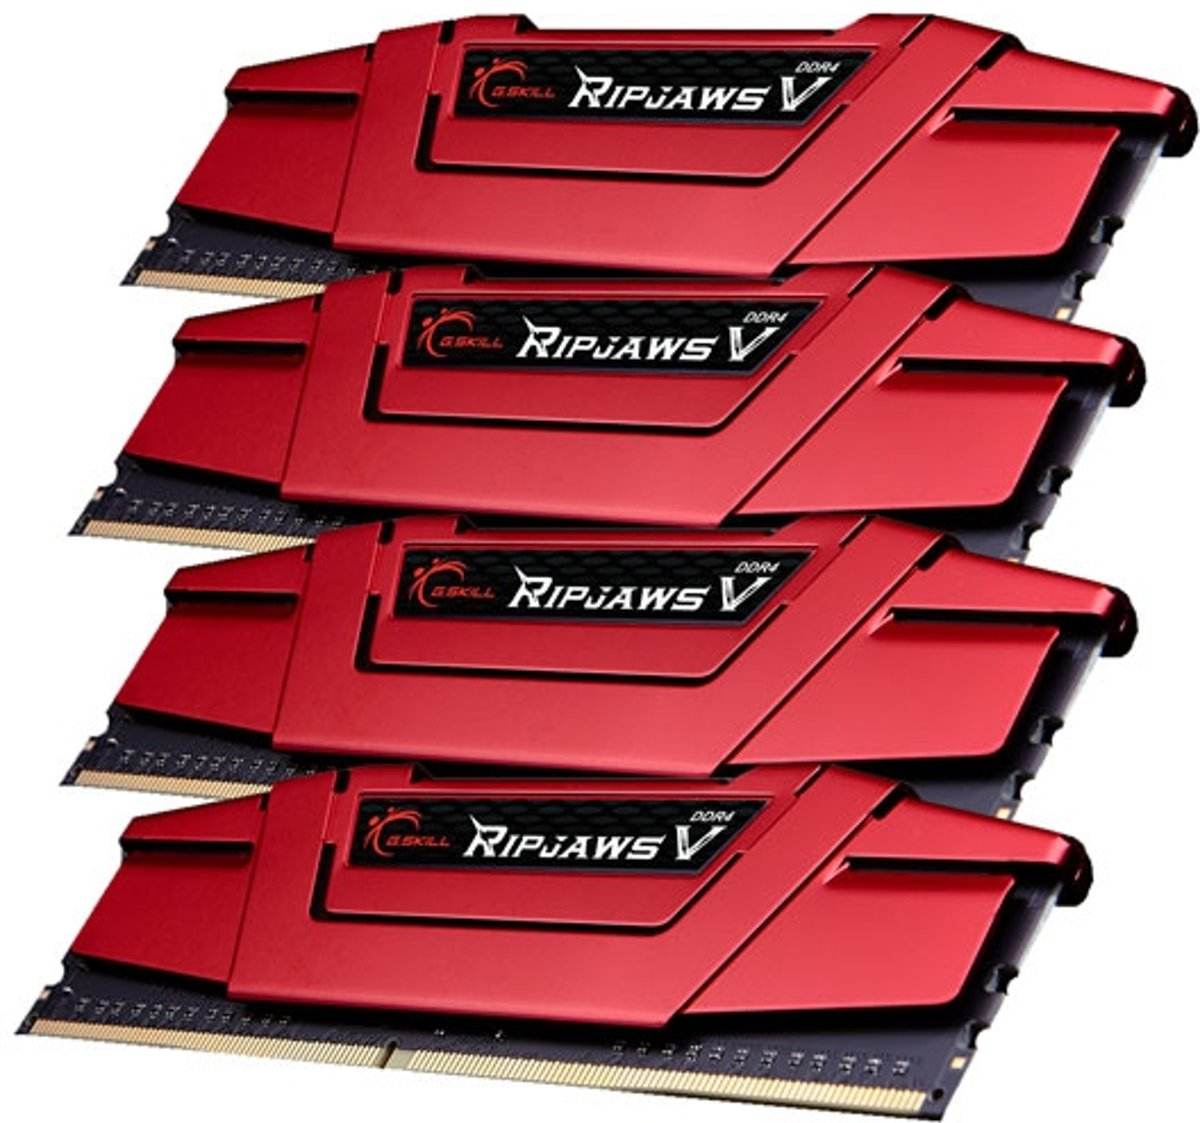 16GB DDR4-2133 geheugenmodule 2133 MHz